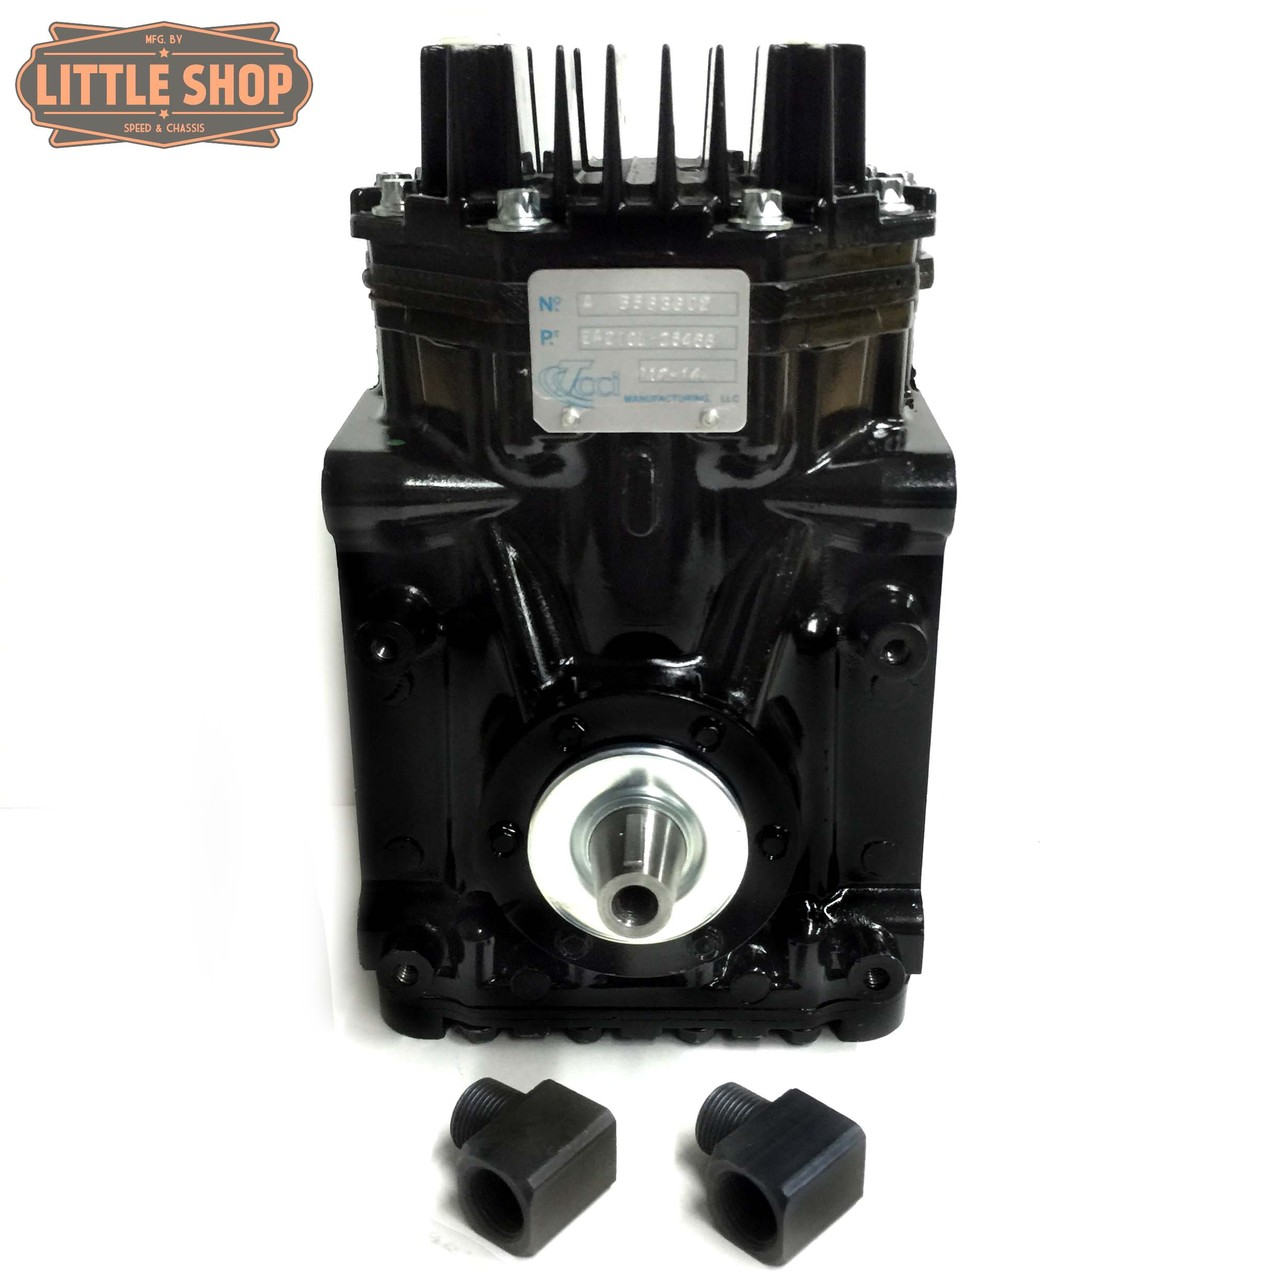 LSMFG-Pre V-SLM 90'-95' GM 4.3, 5.0, 5.7 Pre-Vortec Super Low Maintenance Engine Driven Compressor Kit (same kit as EDC kit but with upgraded SLM compressor)